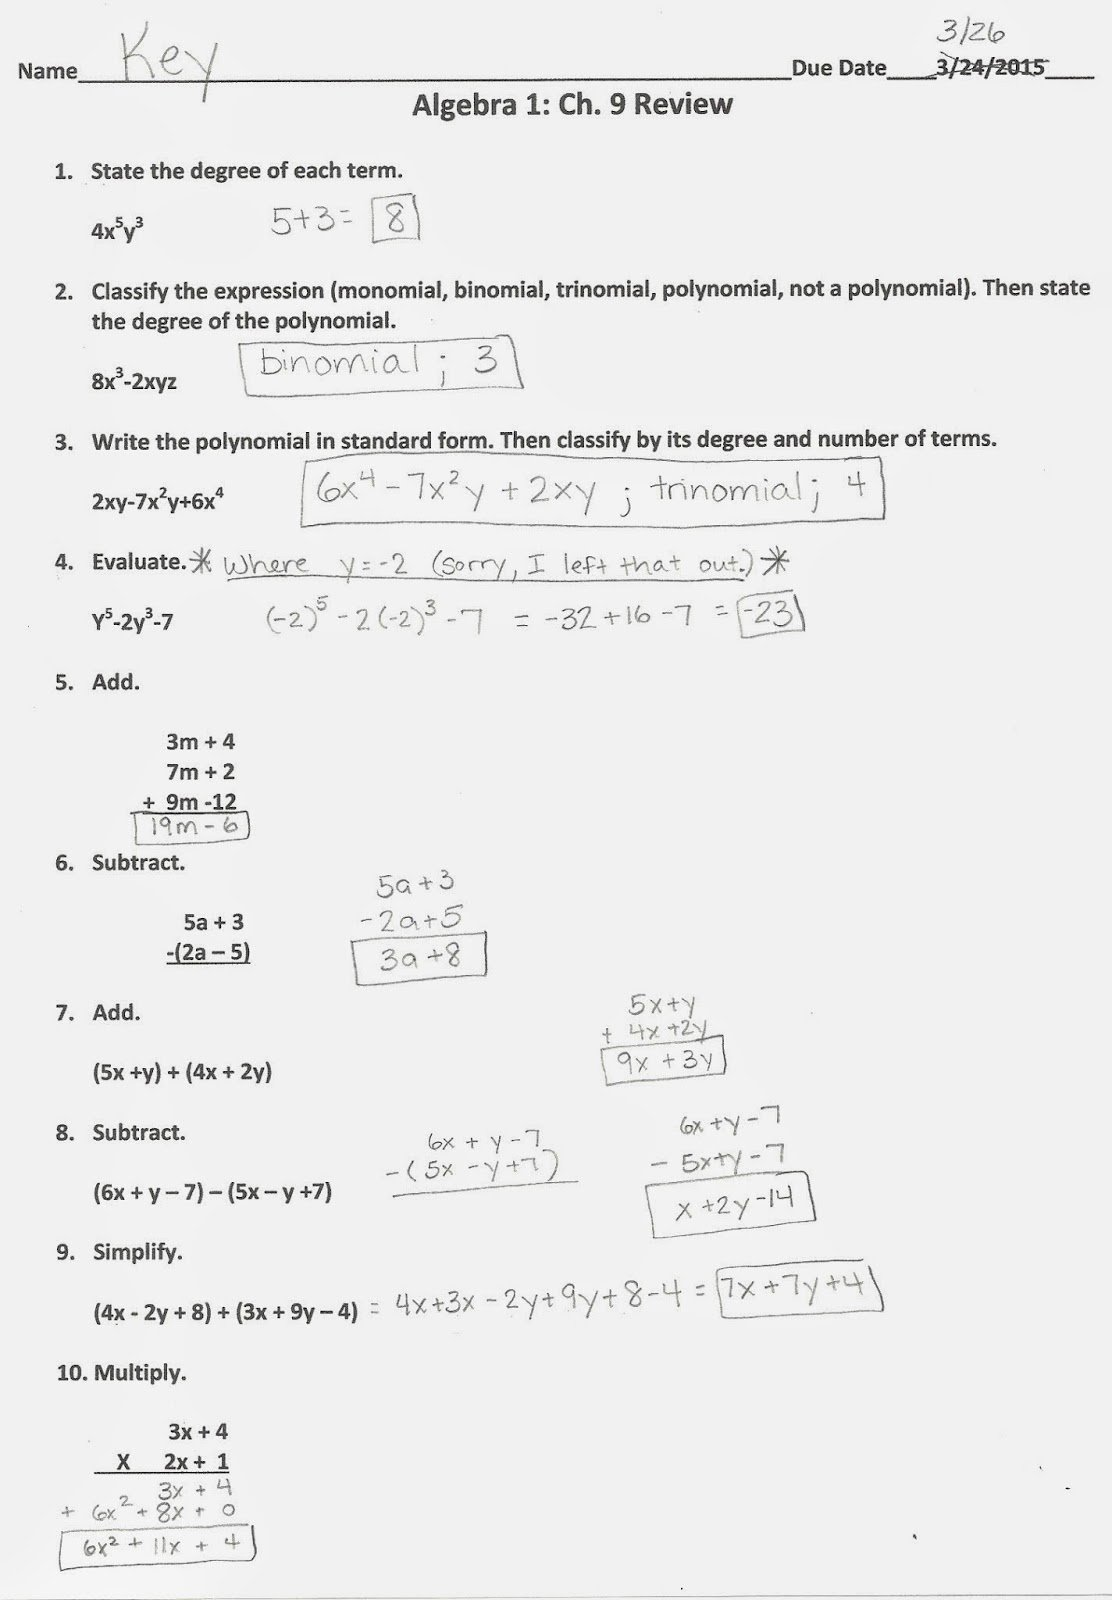 Algebra 2 Review Worksheet Inspirational Algebra Alerts Algebra 1 and 2 Algebra 1 Chapter 9